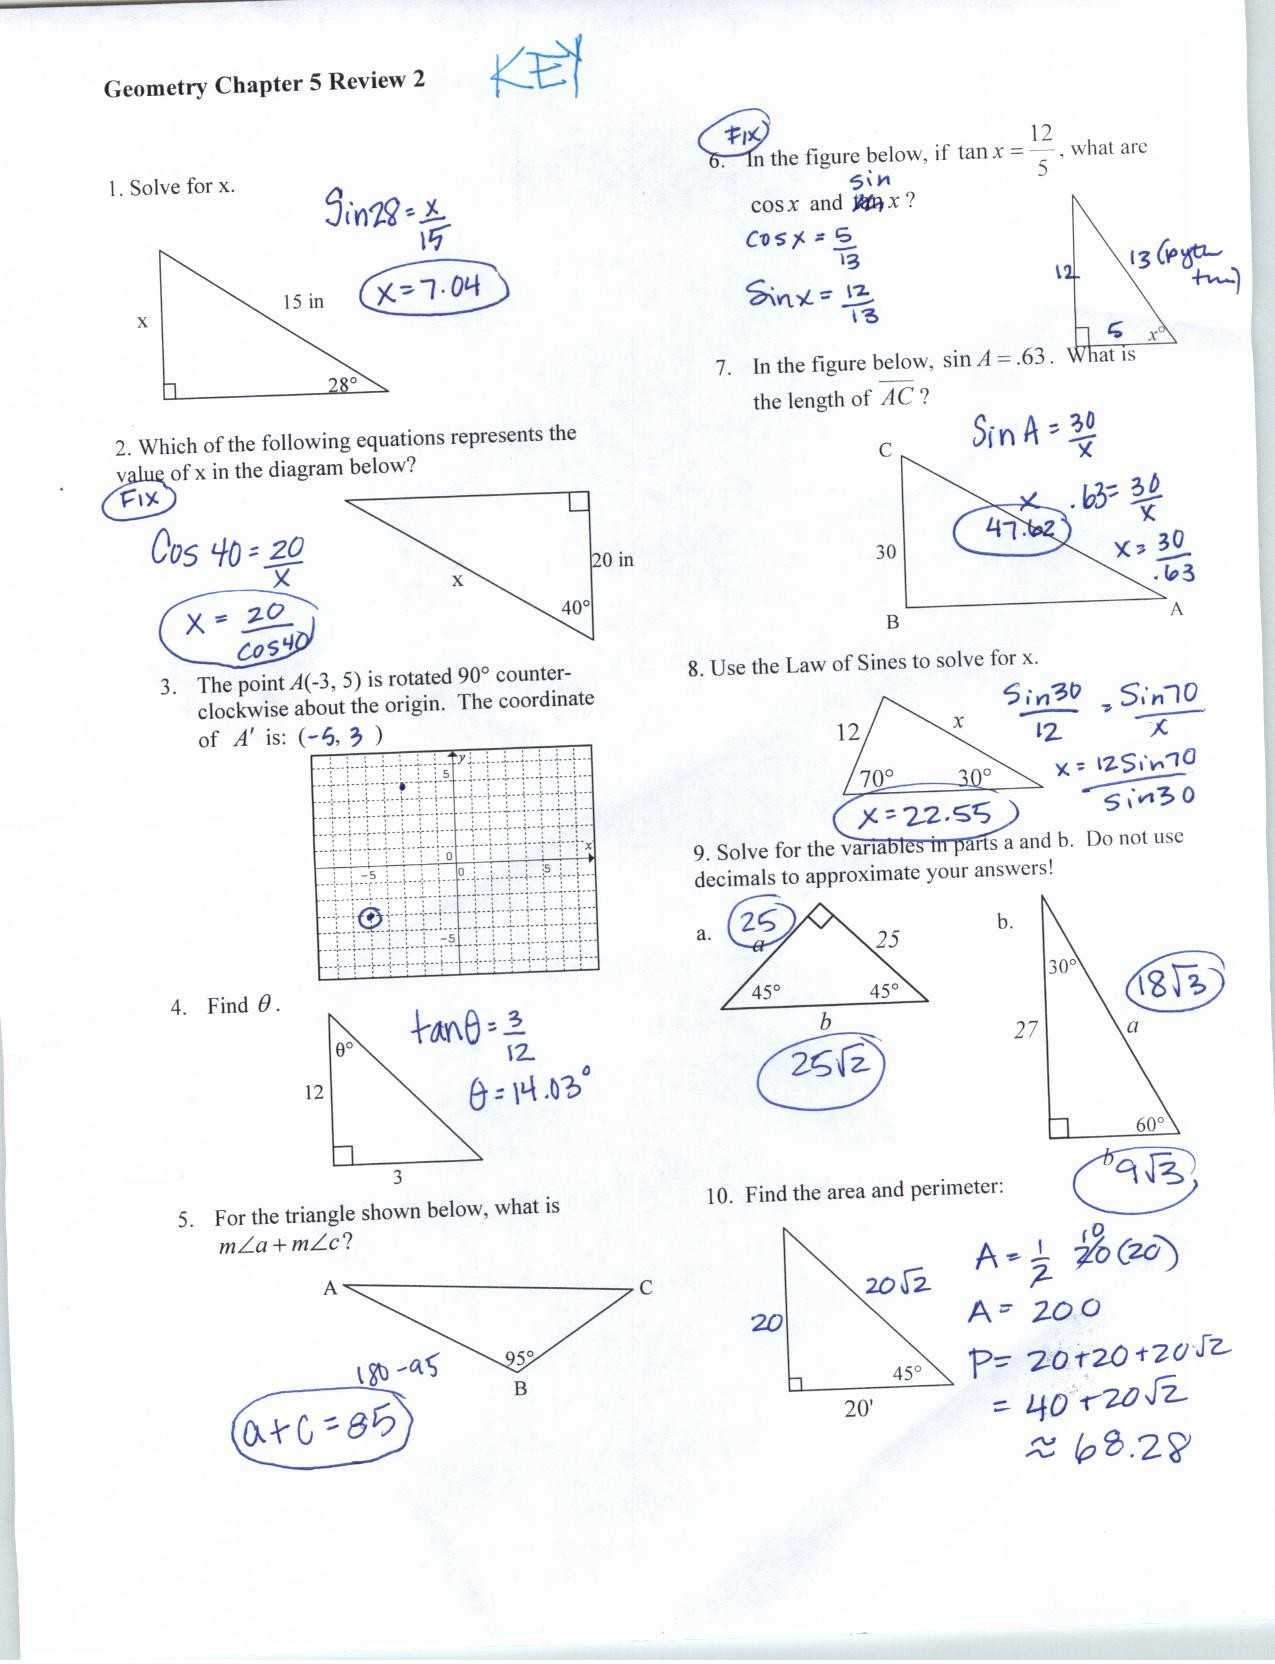 Special Right Triangles Worksheet Answer Key with Work or Special Right Triangles Worksheet Answers Best Trigonometry Icon